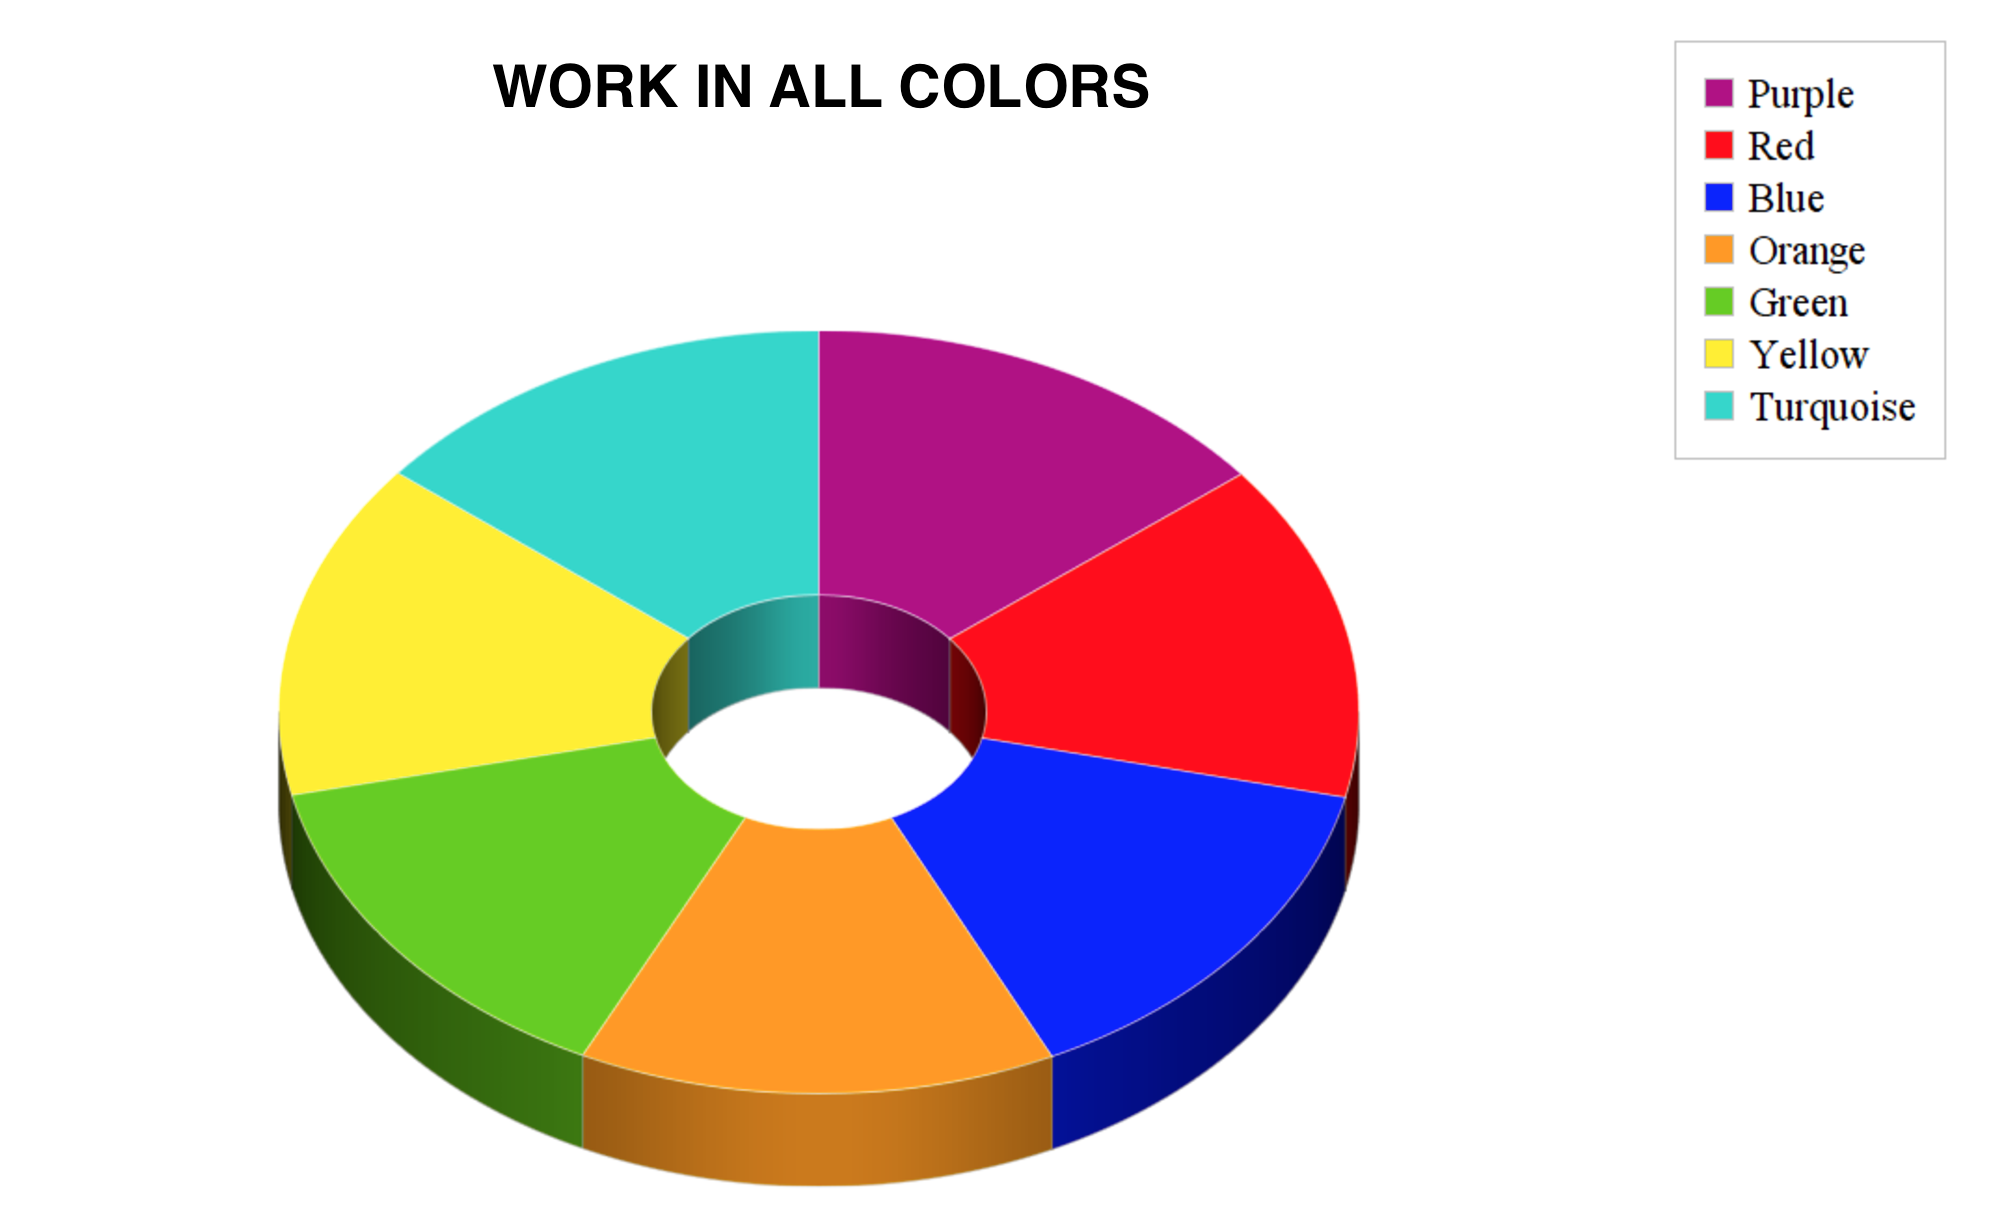 Figure 2. The Seven Languages of the Work In All Colors Method.